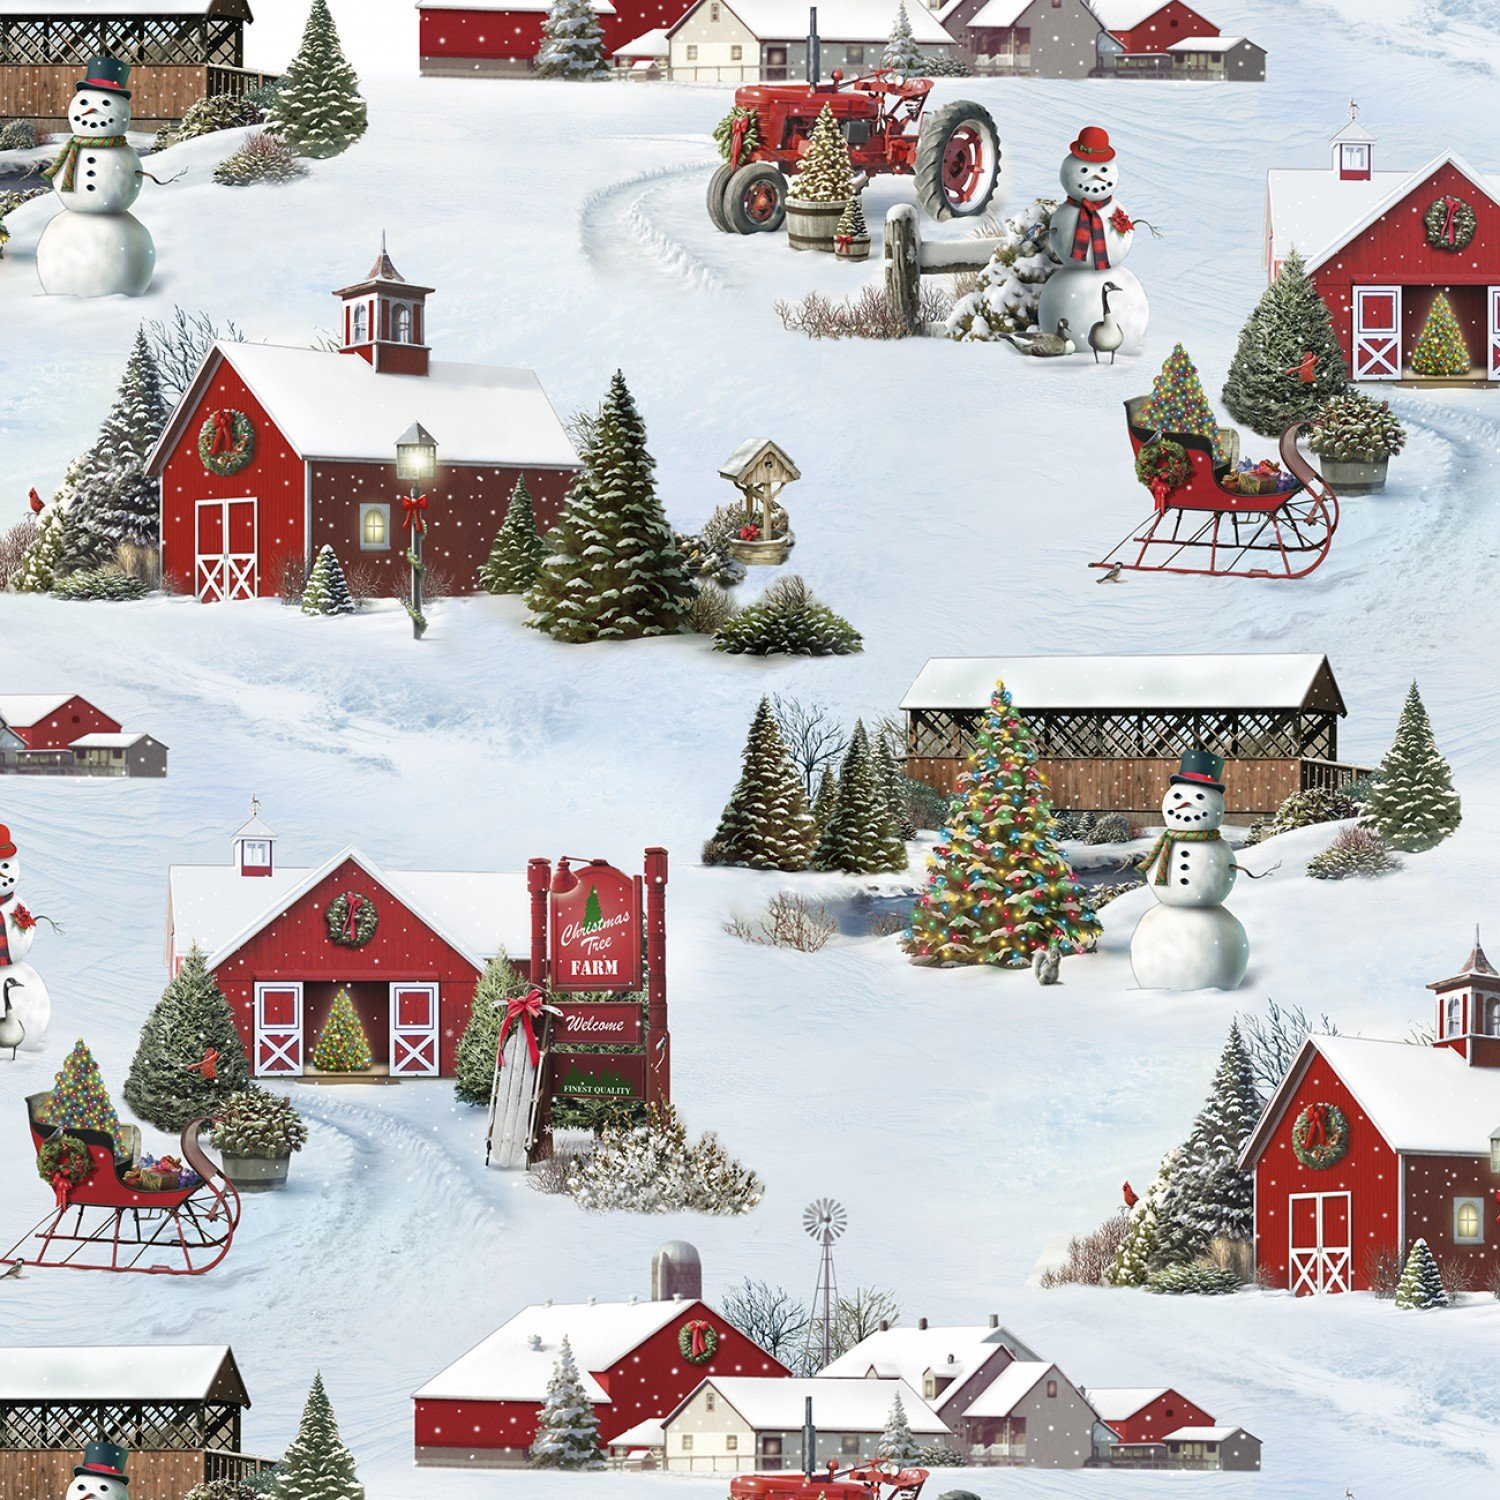 Elizabeth Studio - Tis' The Season 13003 Snow - Scenic